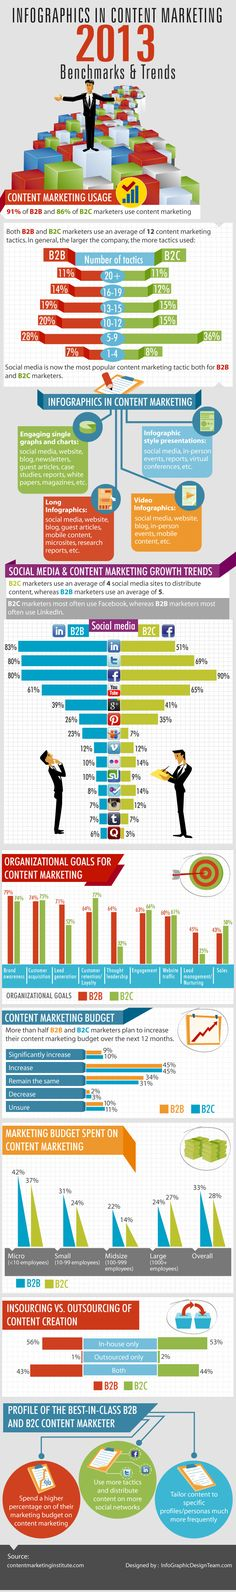 Infographics in content marketing 2013 #infographic